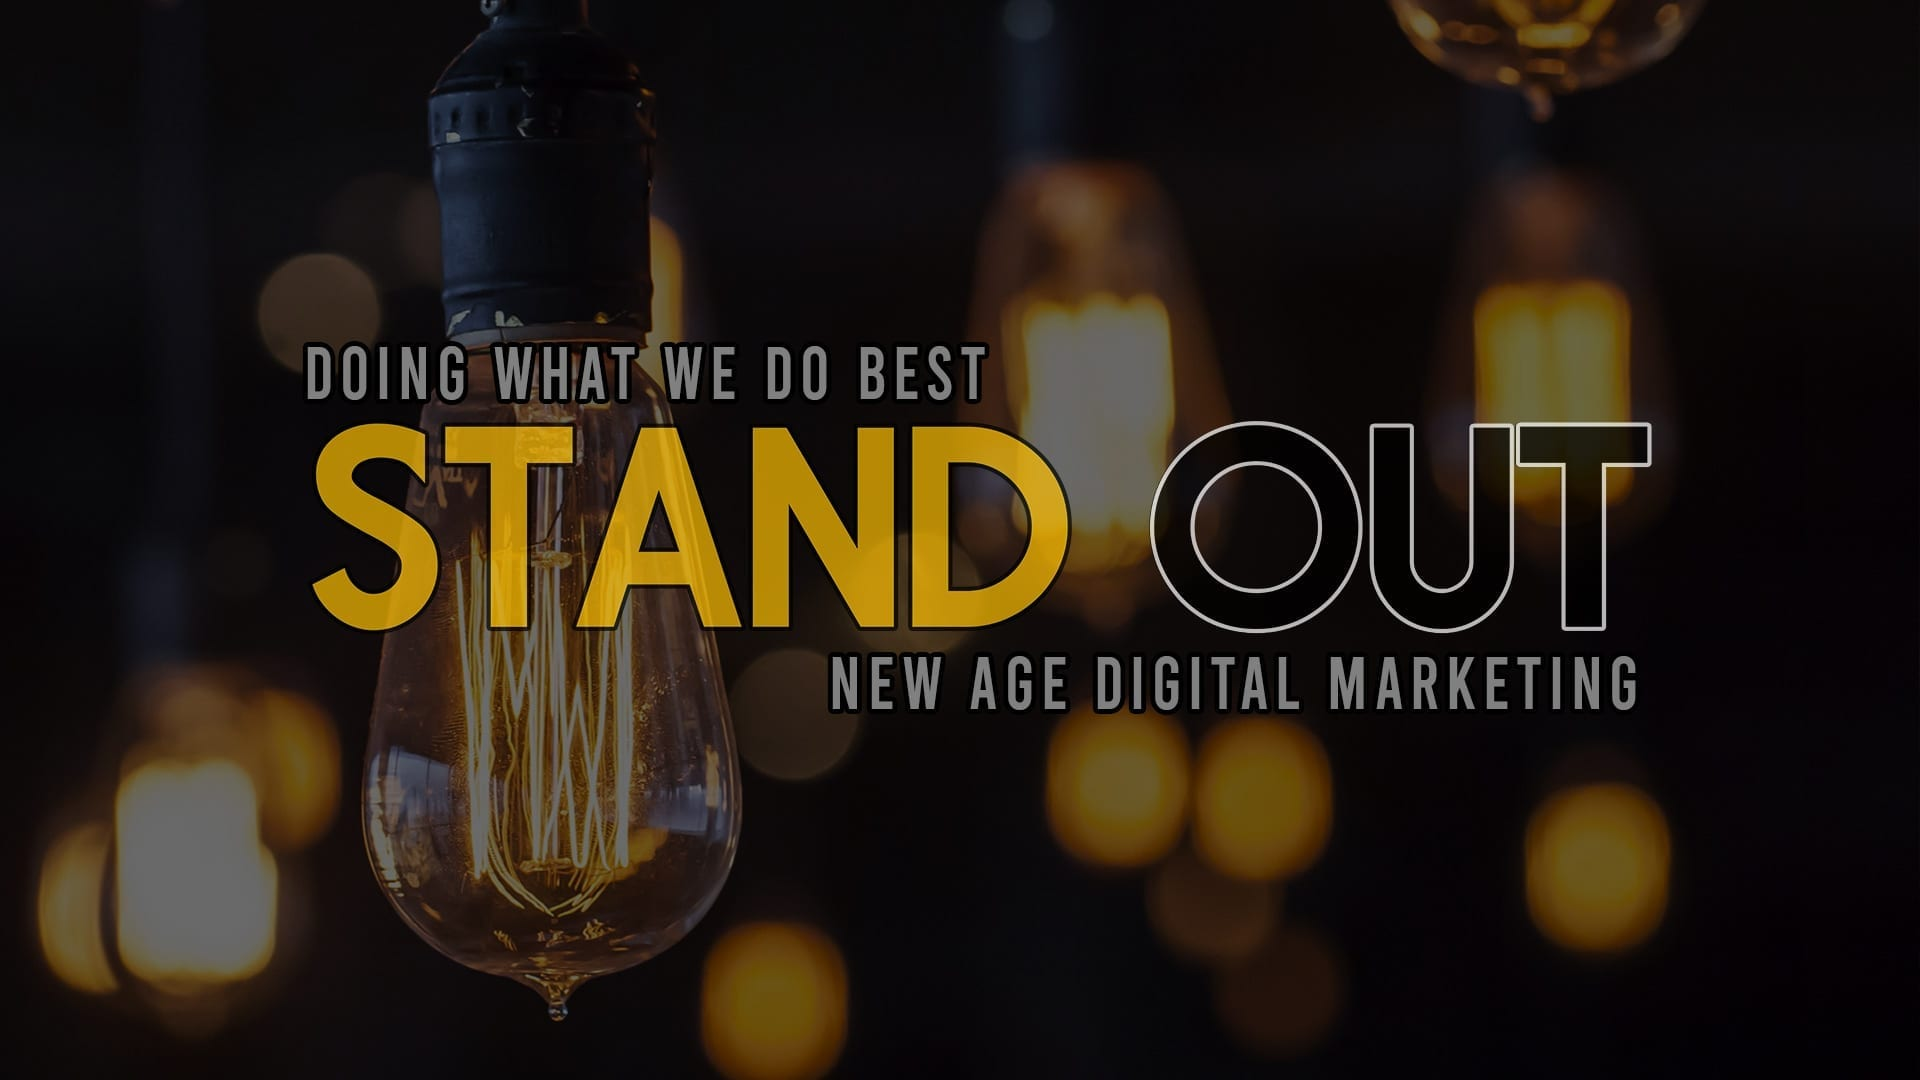 StandOut Advertising Digital Marketing Services